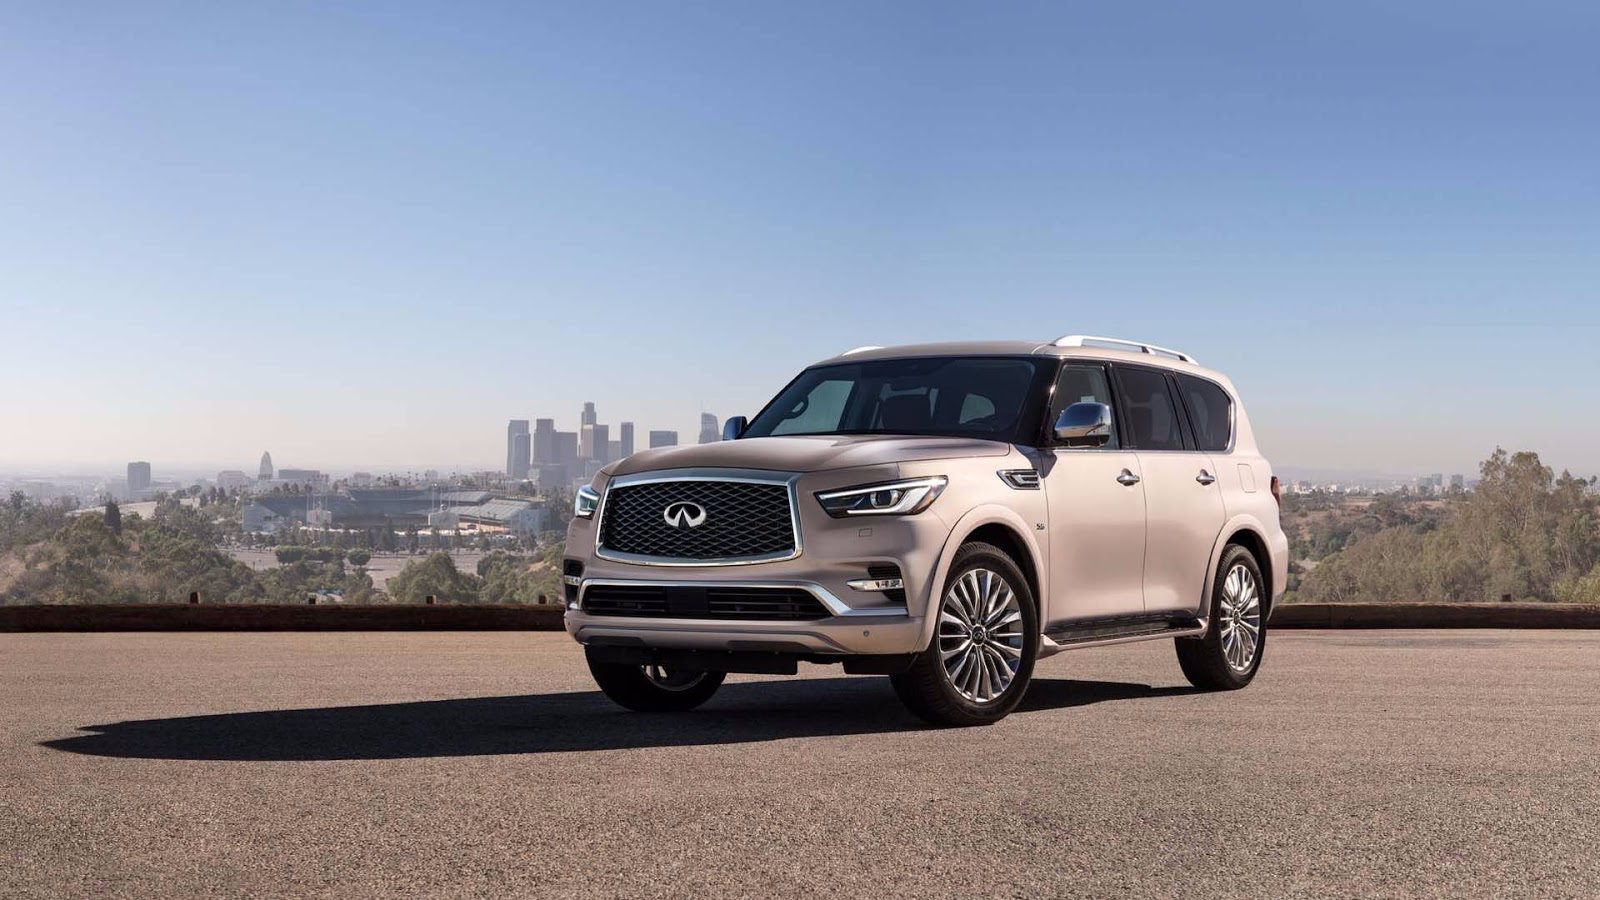 2018 infiniti qx80 facelift retails at 64 750 autoevolution. Black Bedroom Furniture Sets. Home Design Ideas